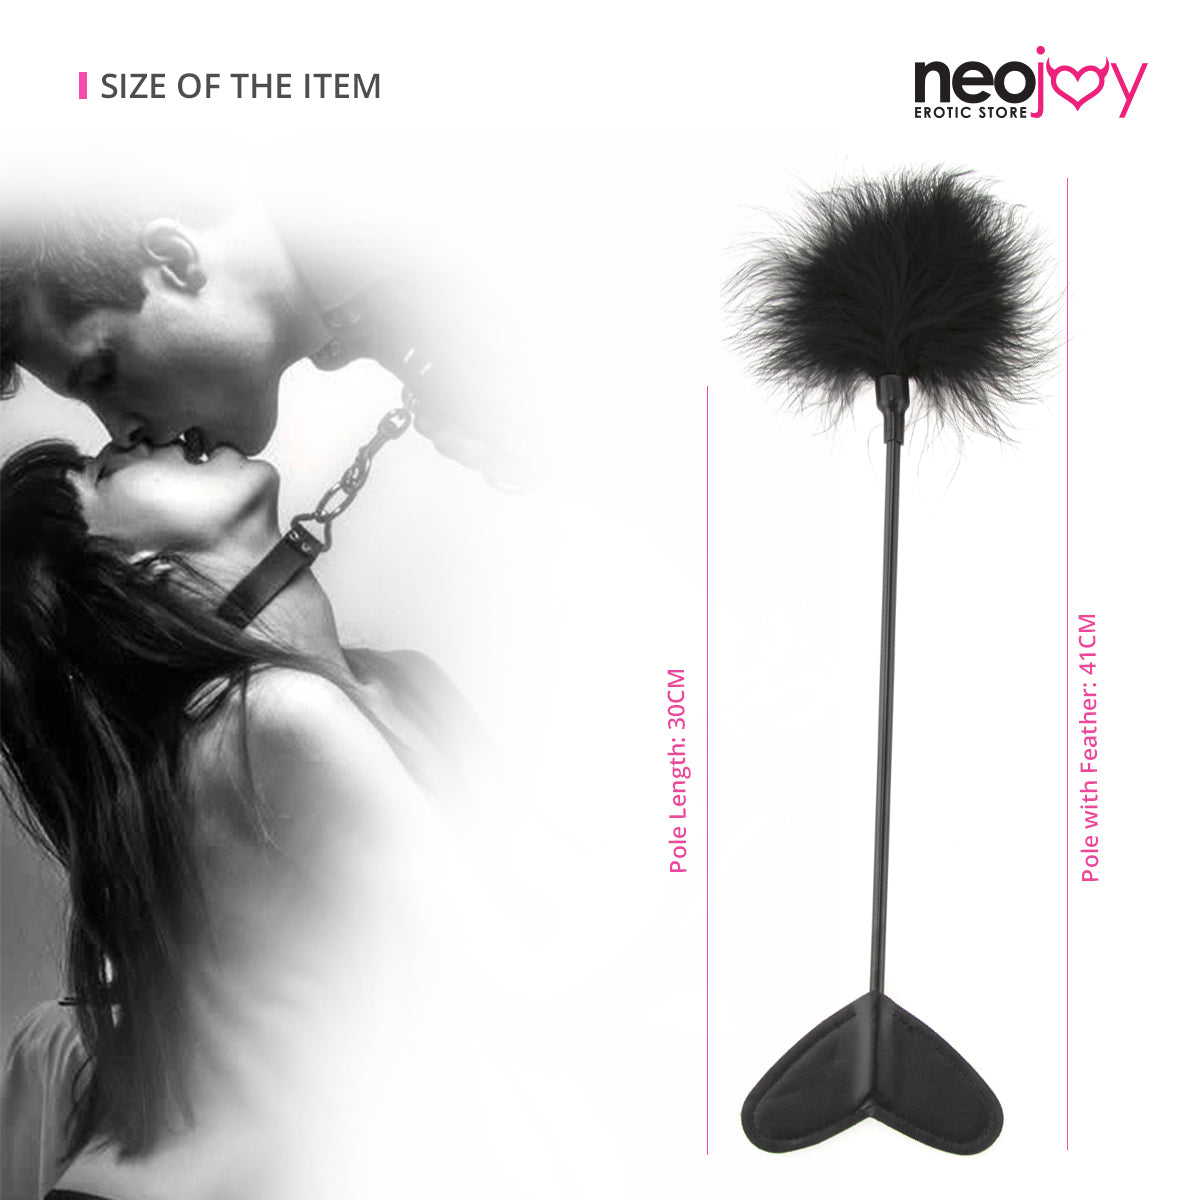 Neojoy Feather Fluffy Crop Tickler Double Ended With Silicone & Feathers - Black 16.14 inch - 41cm 5